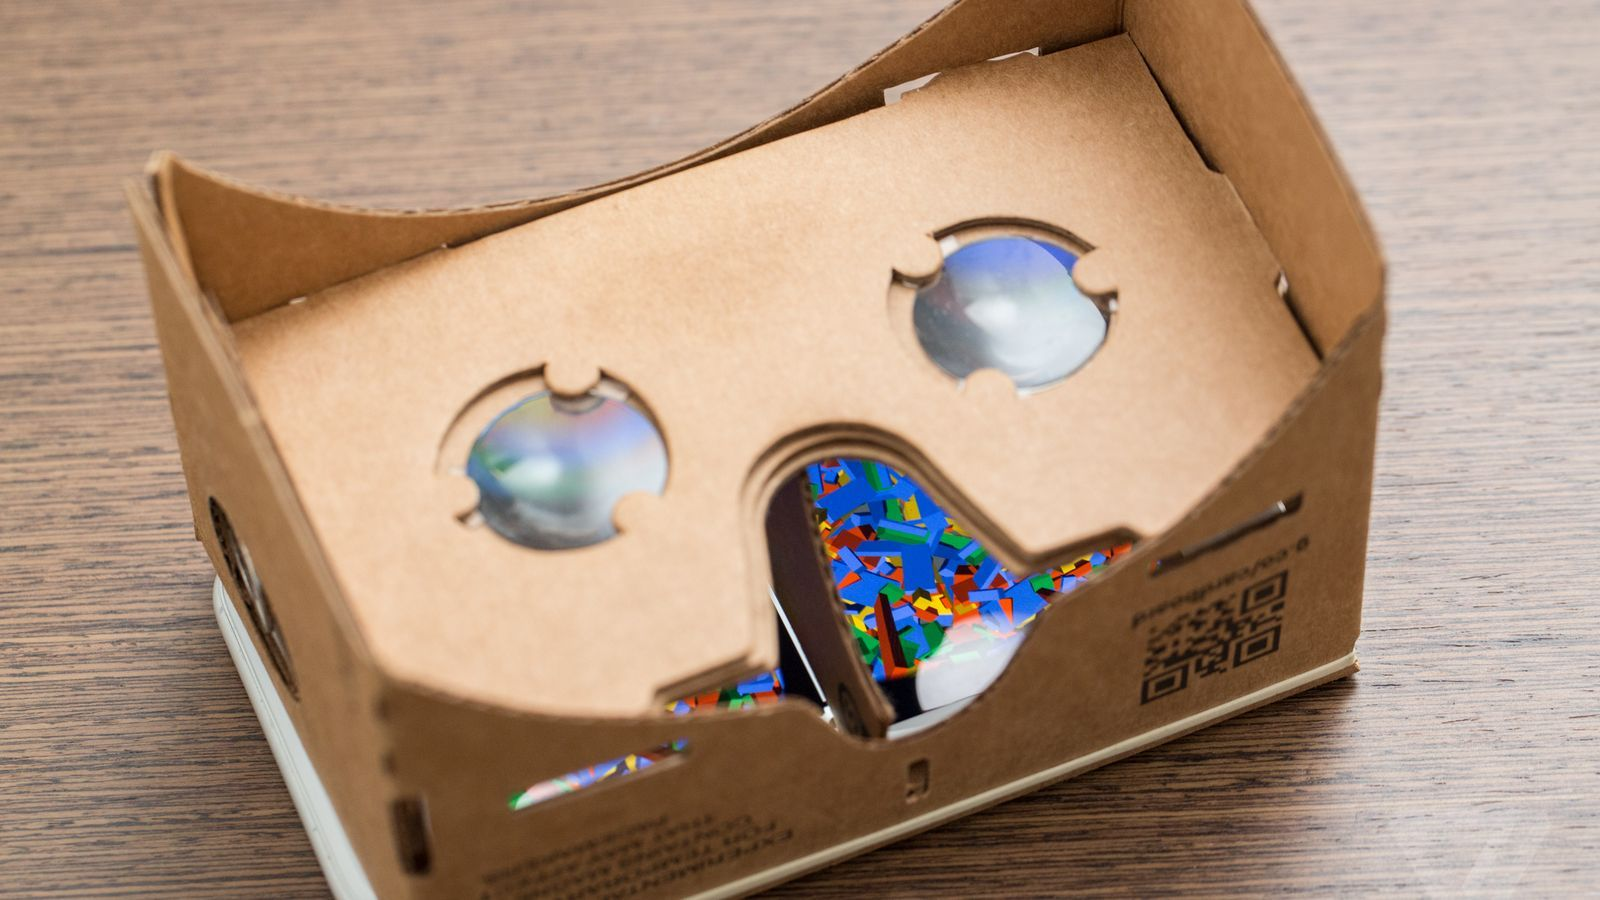 Google just released a new app for Cardboard that stitches together 3D panoramas…